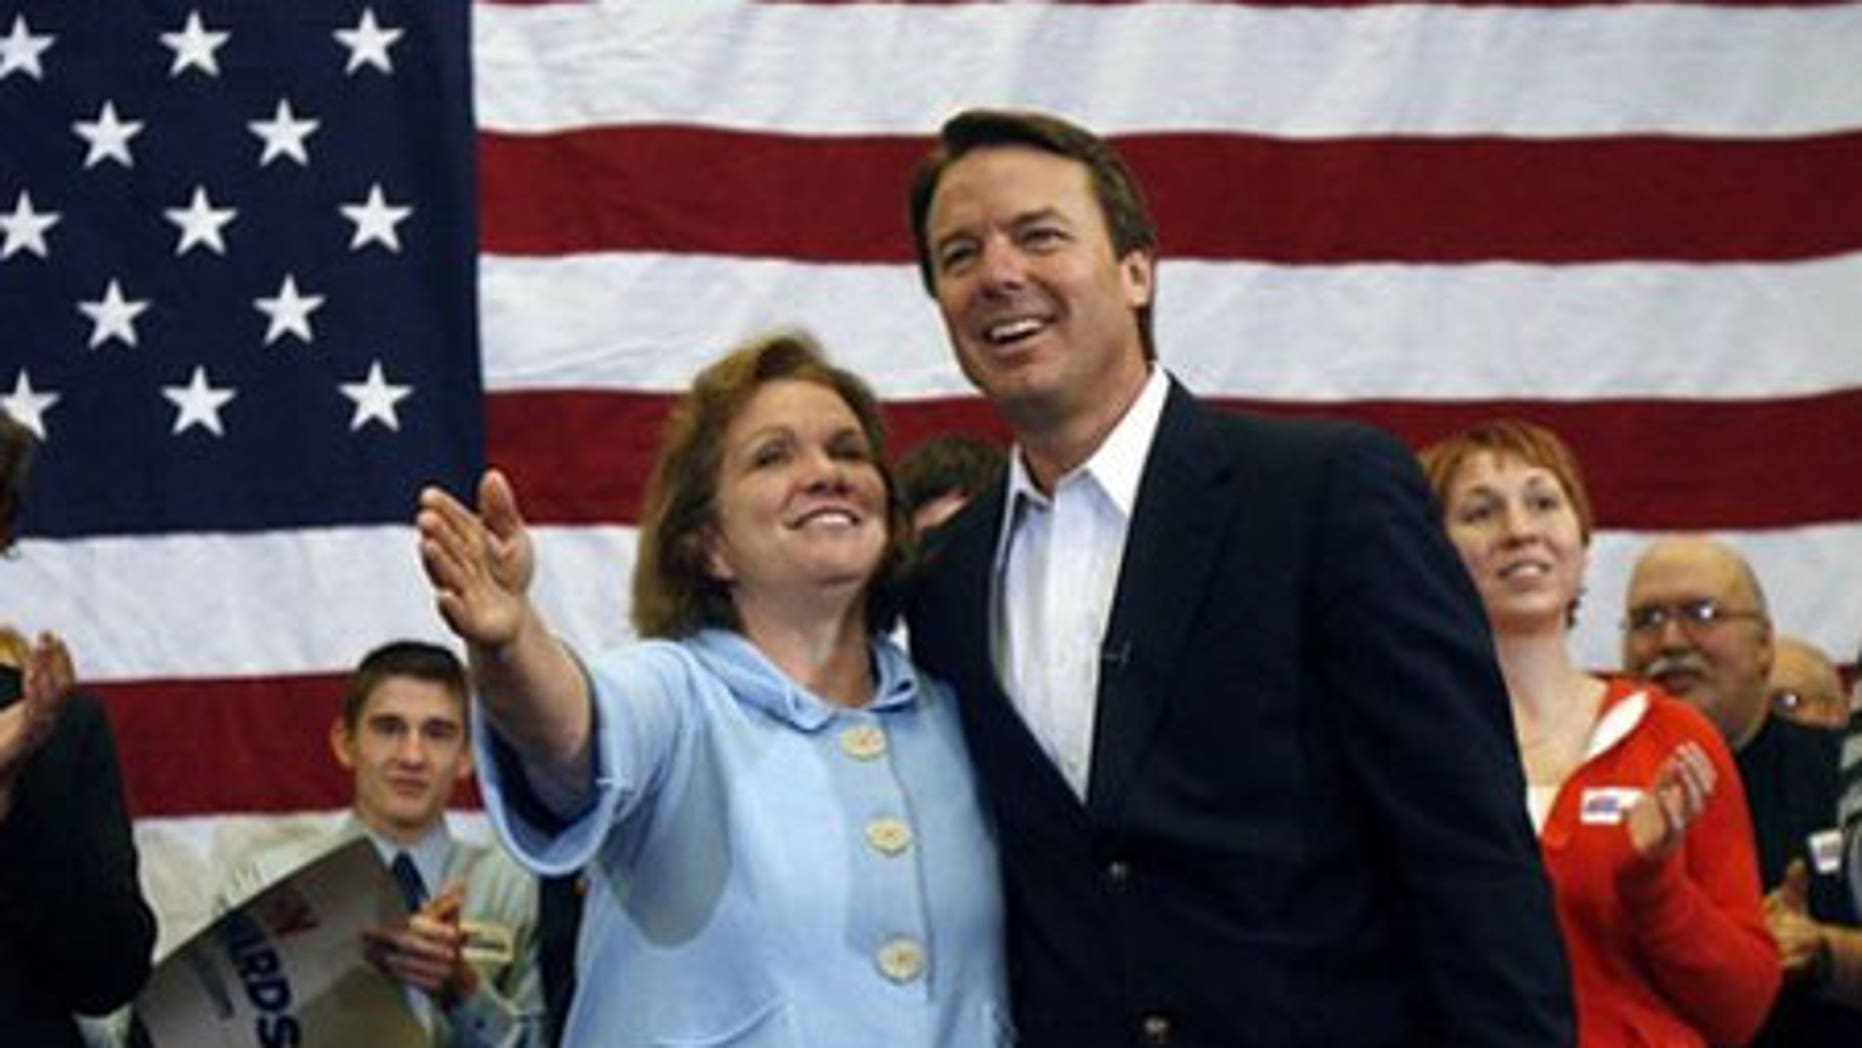 Jan. 1, 2008: Elizabeth Edwards and hsuband, former Democratic Presidential candidate John Edwards, a few months prior to the announcement of his affair.